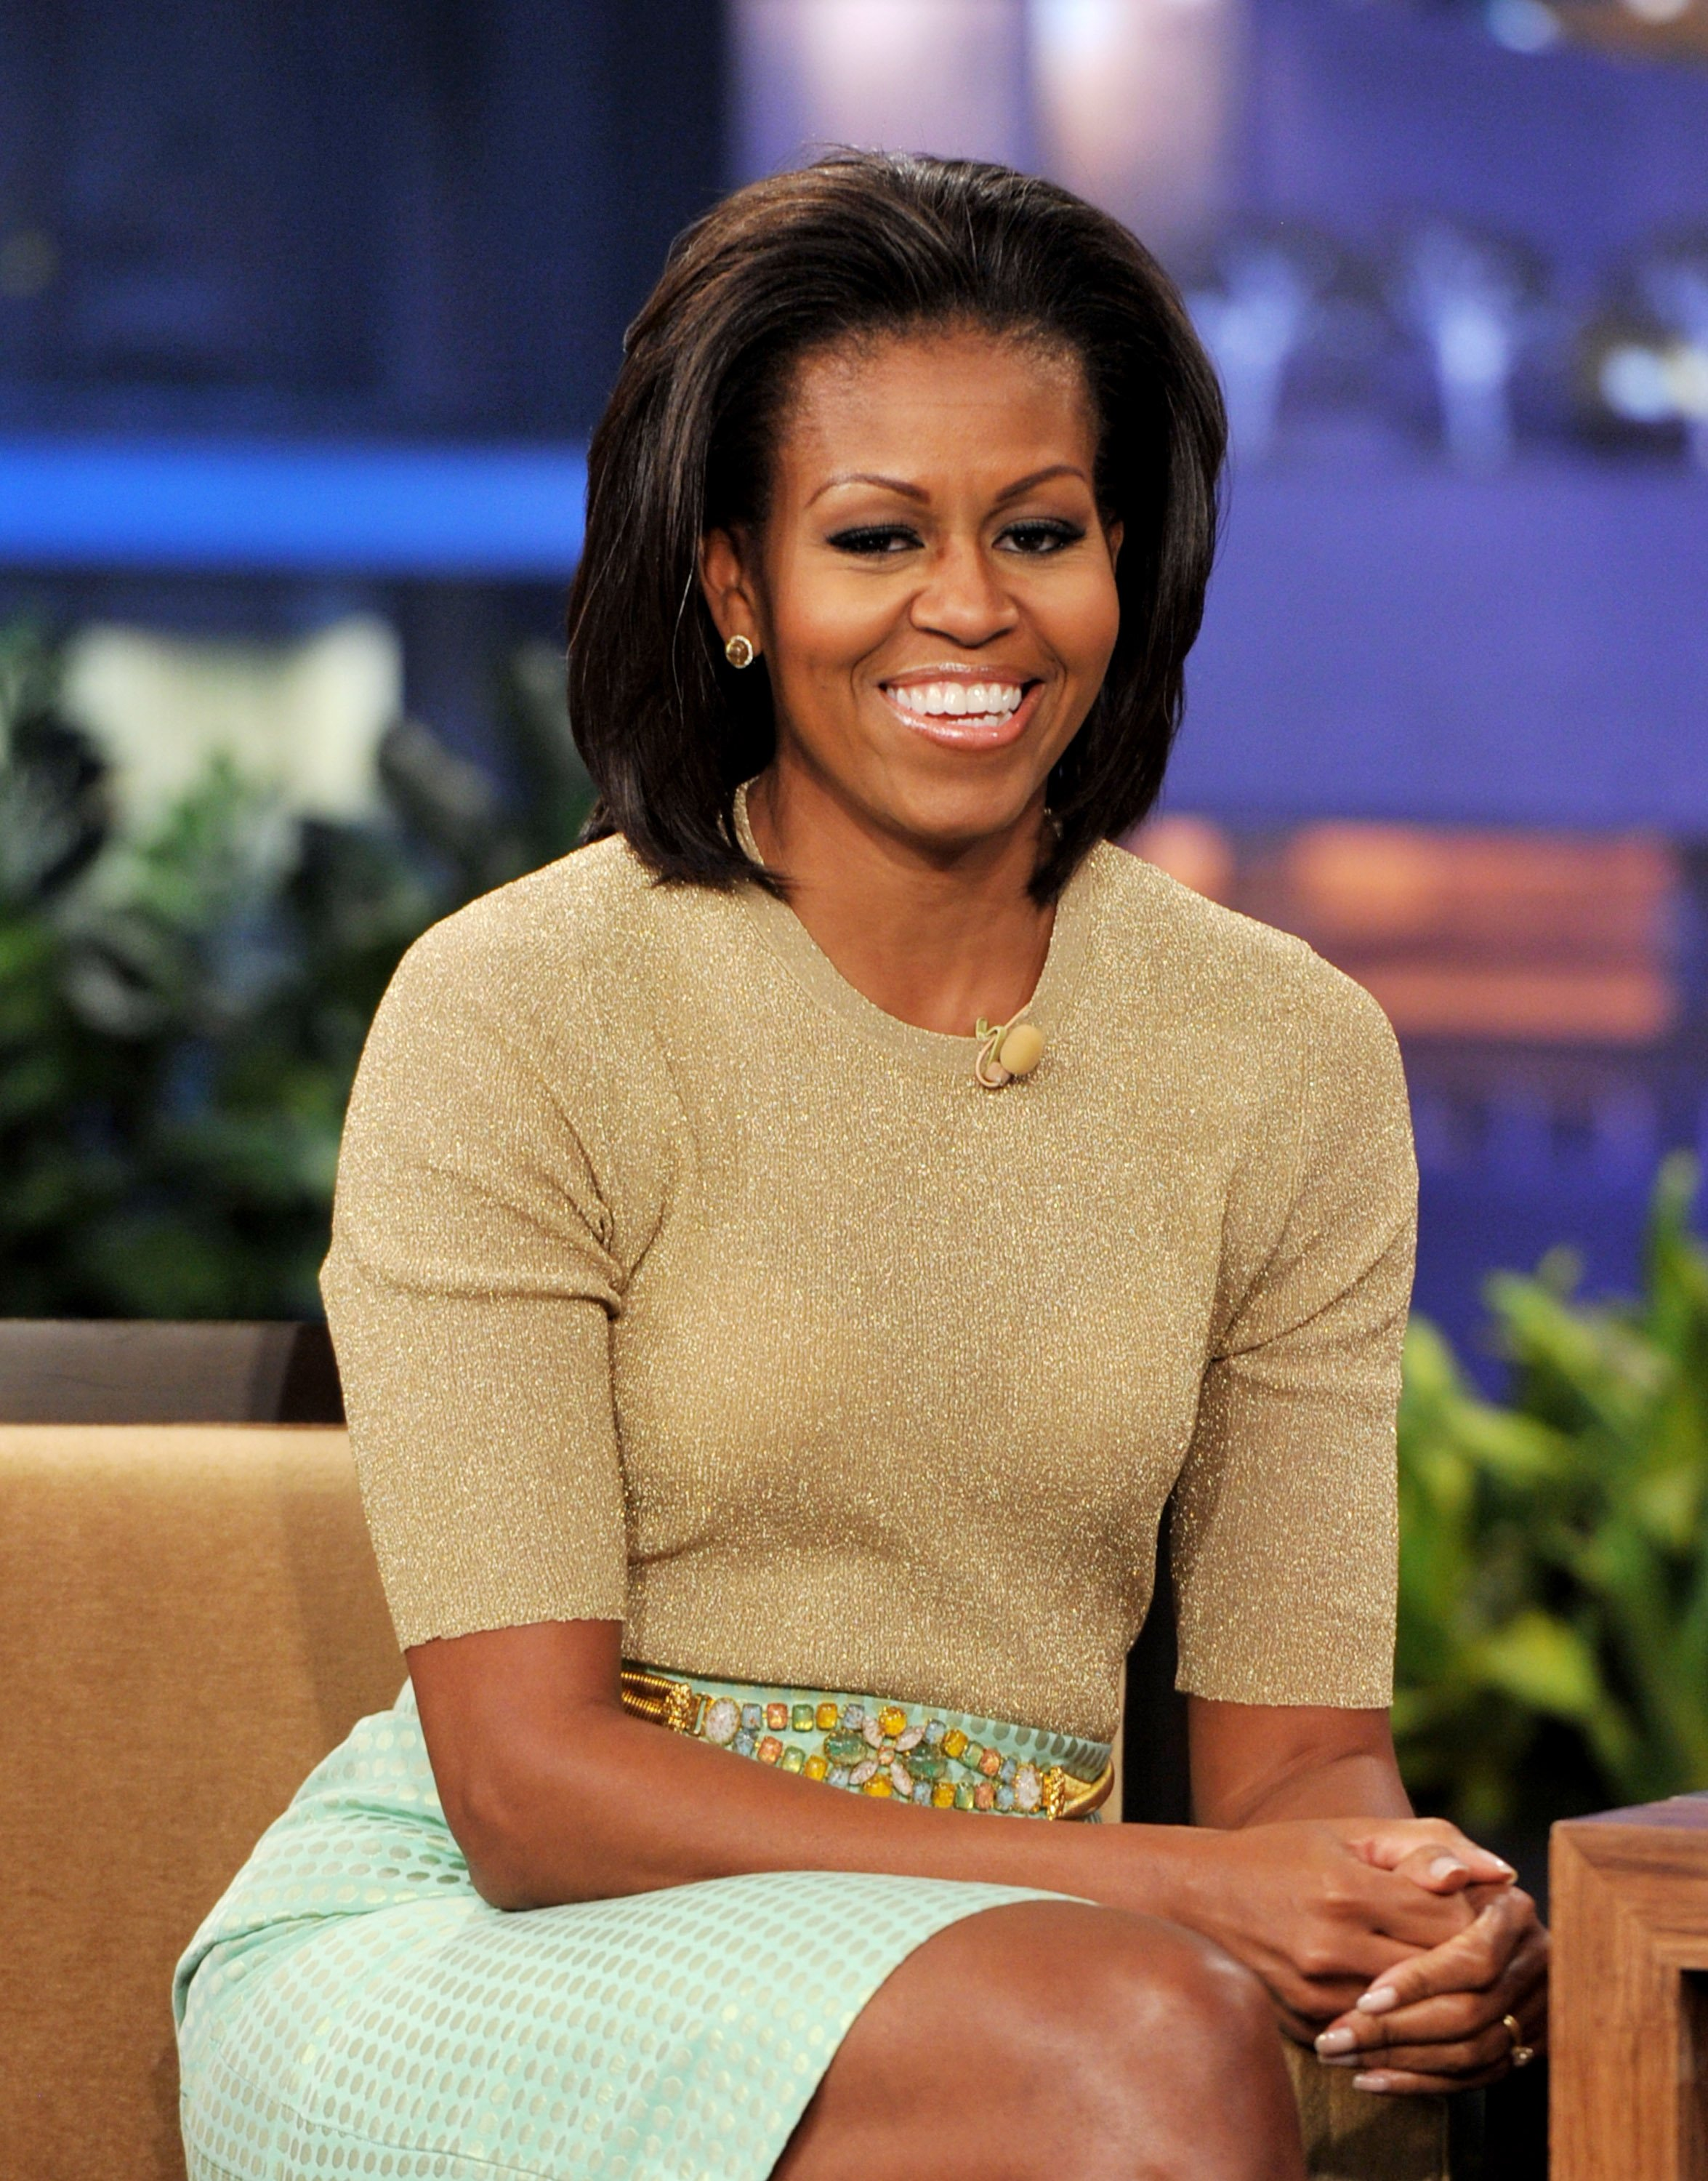 """Michelle Obama on """"The Tonight Show with Jay Leno"""" in January 2012. 